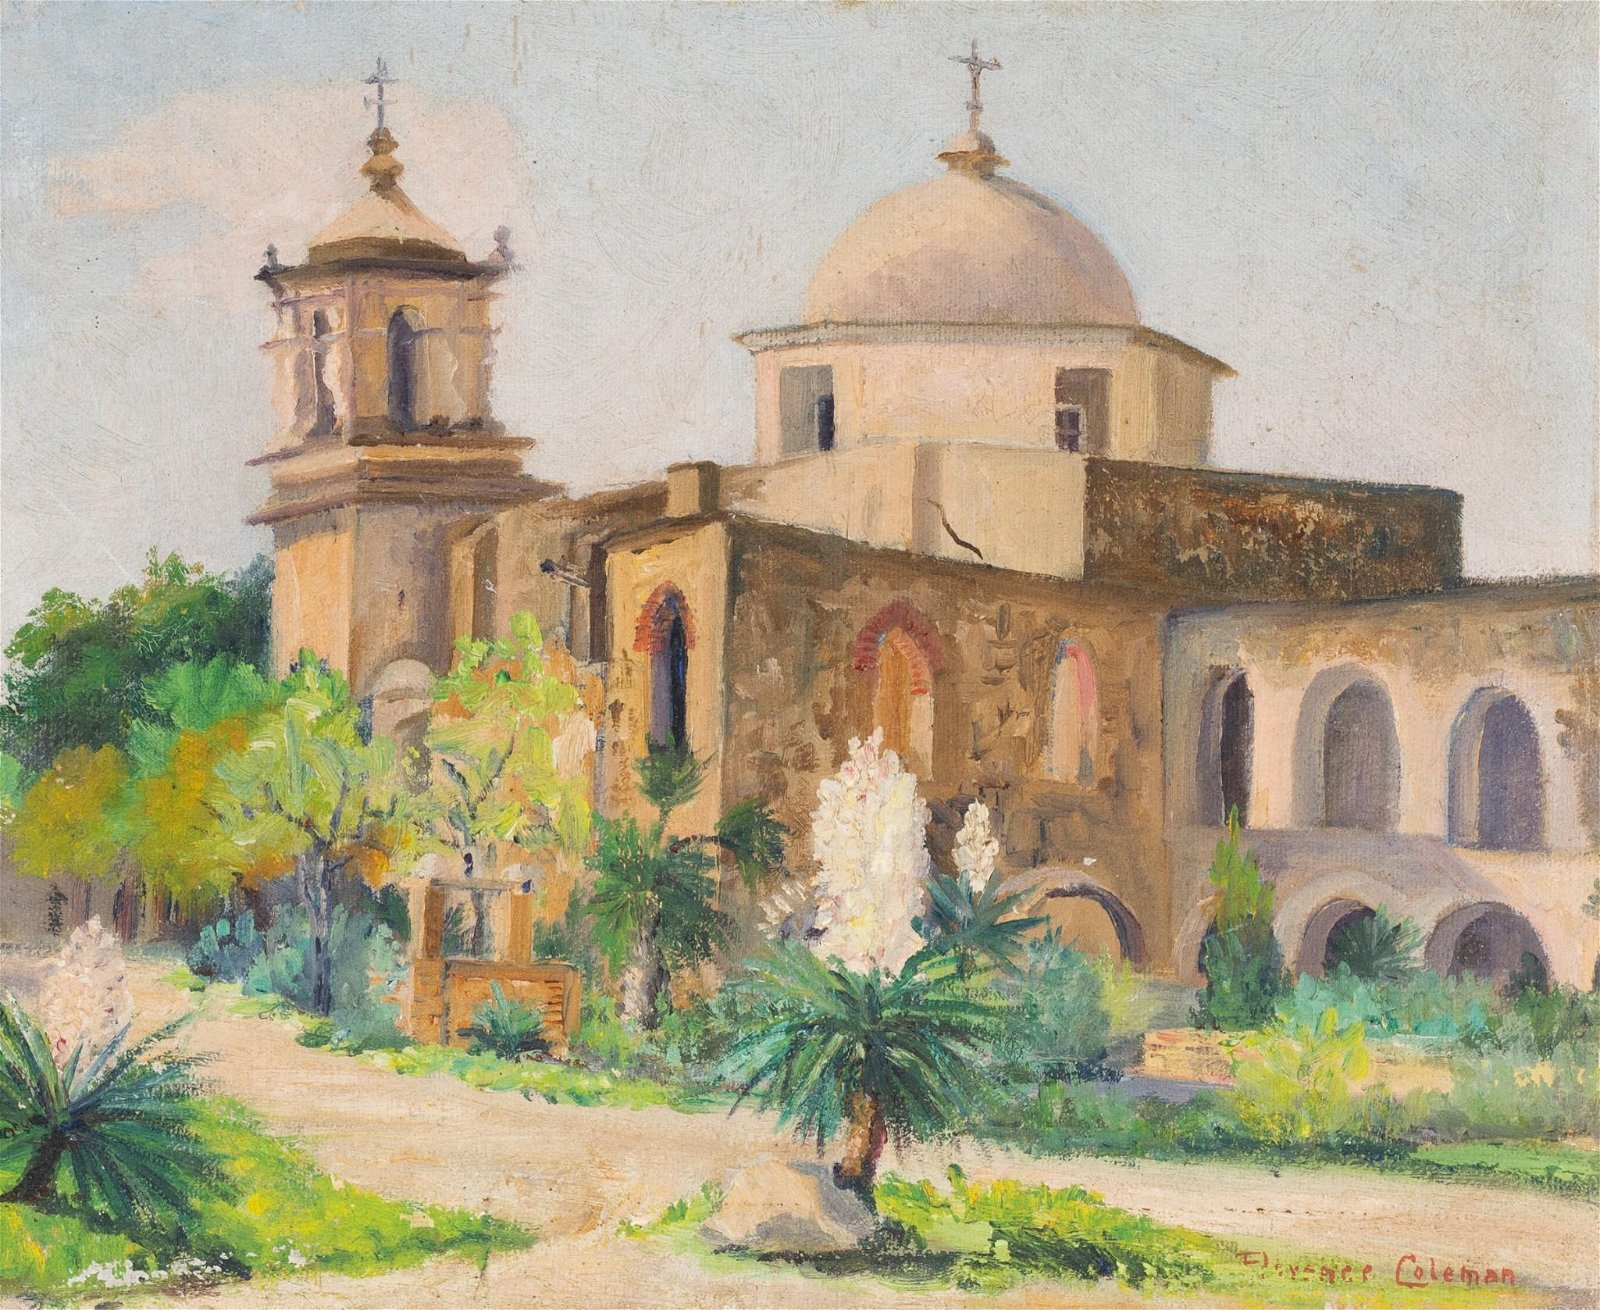 Florence Coleman (1889-1980), Mission San Jose, oil